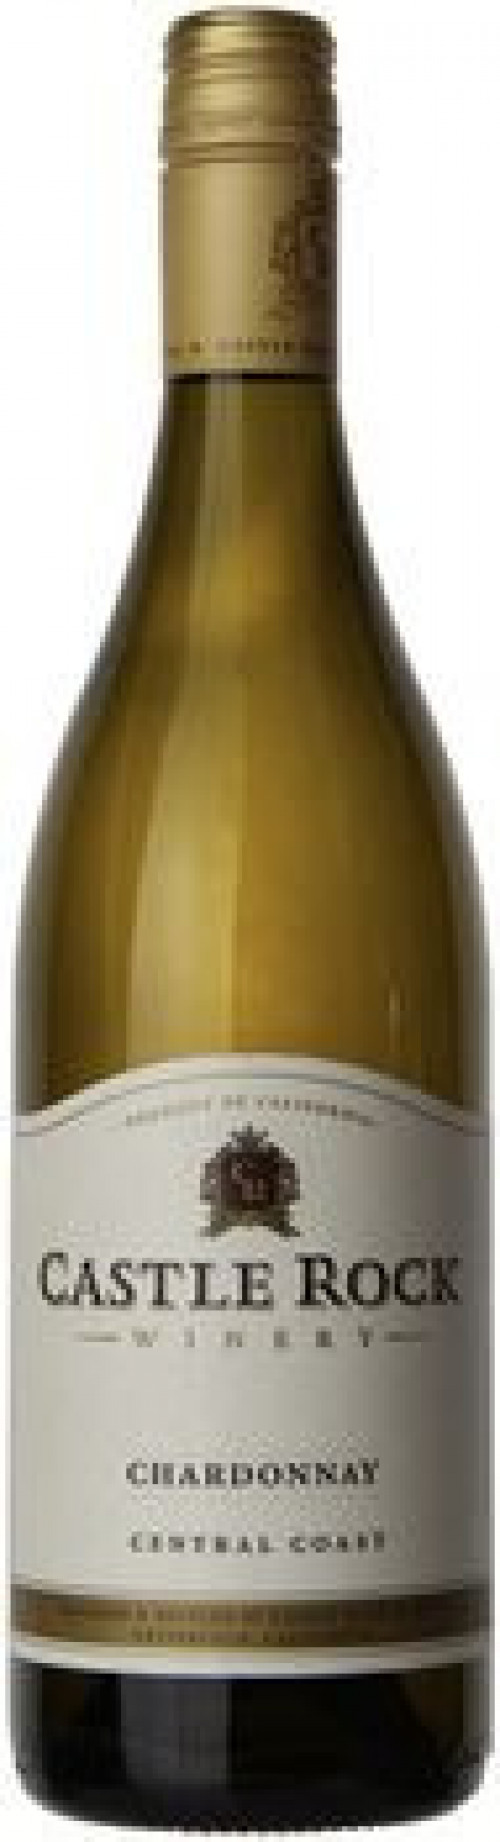 Castle Rock Chardonnay Central Coast 750ml